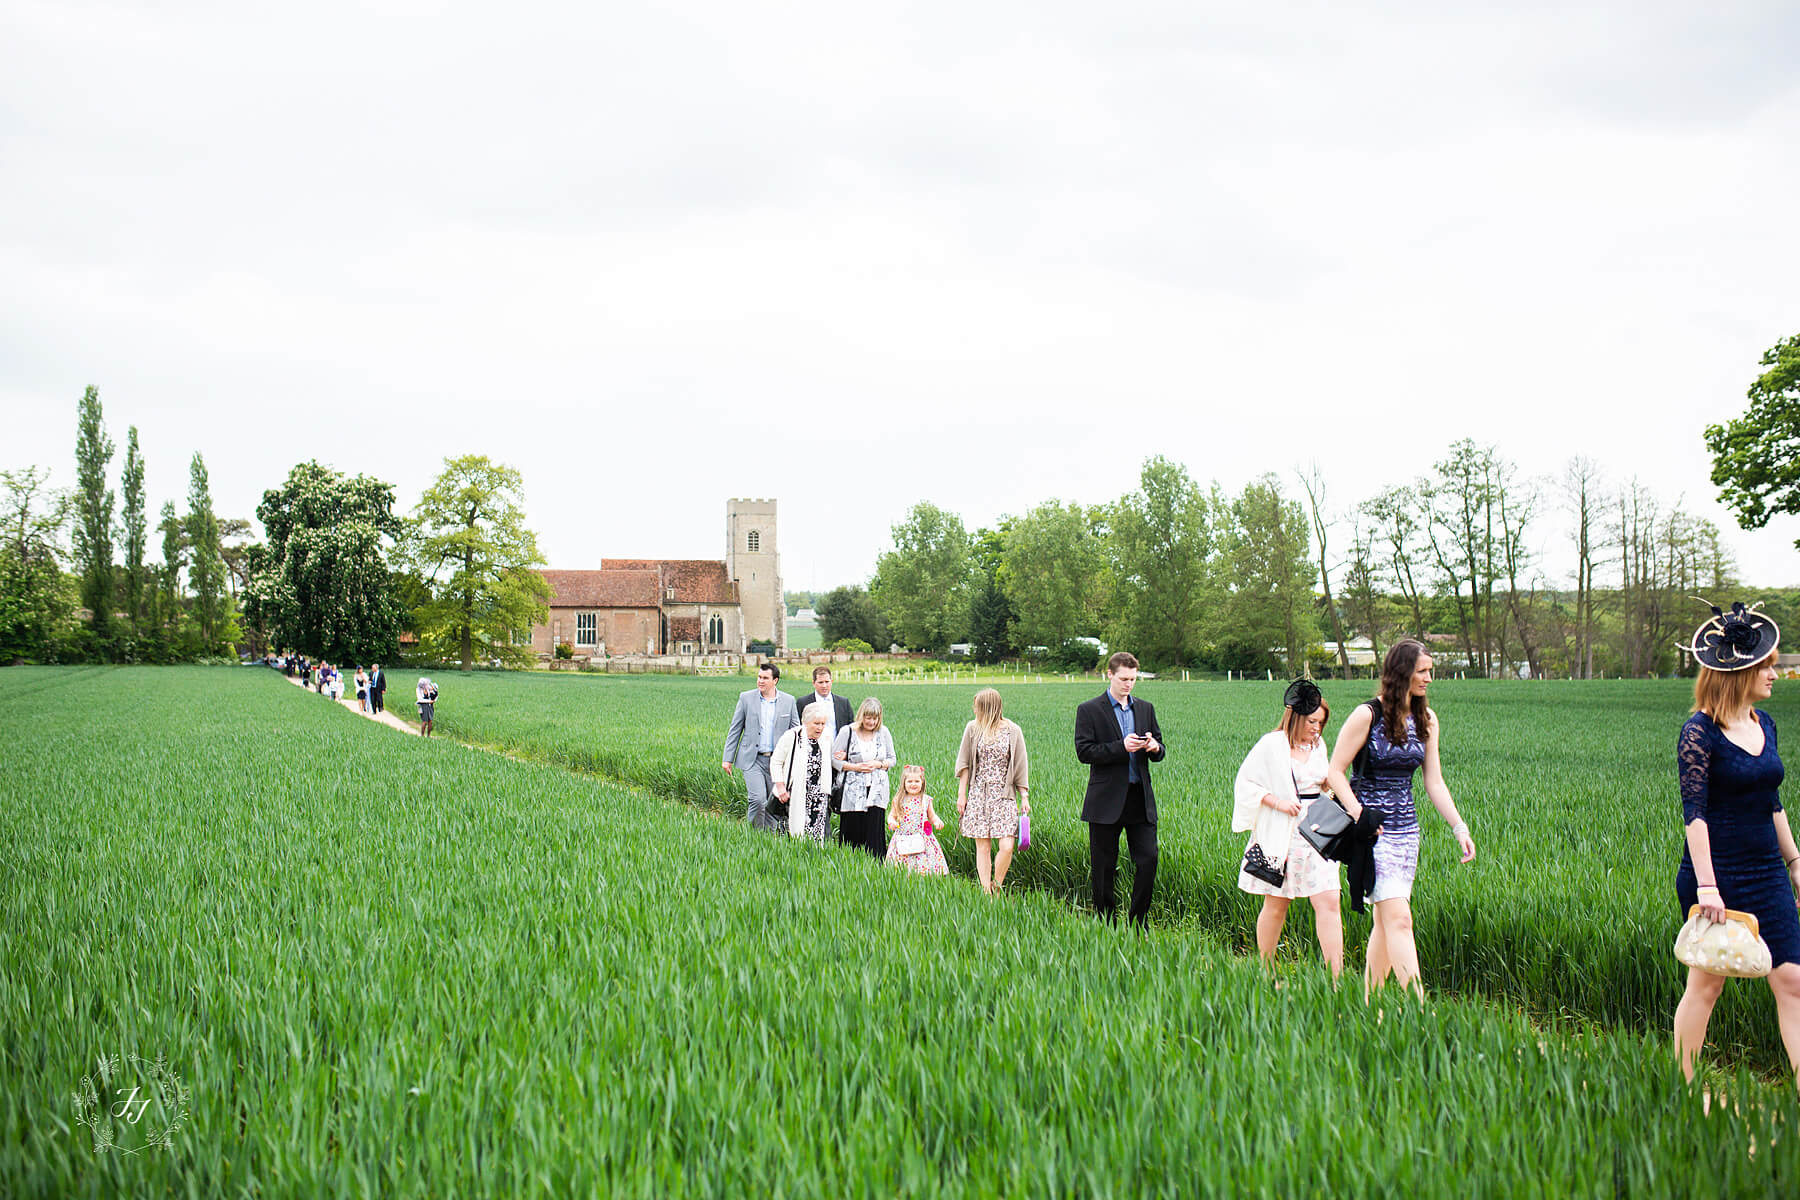 The view from to Gosfield church